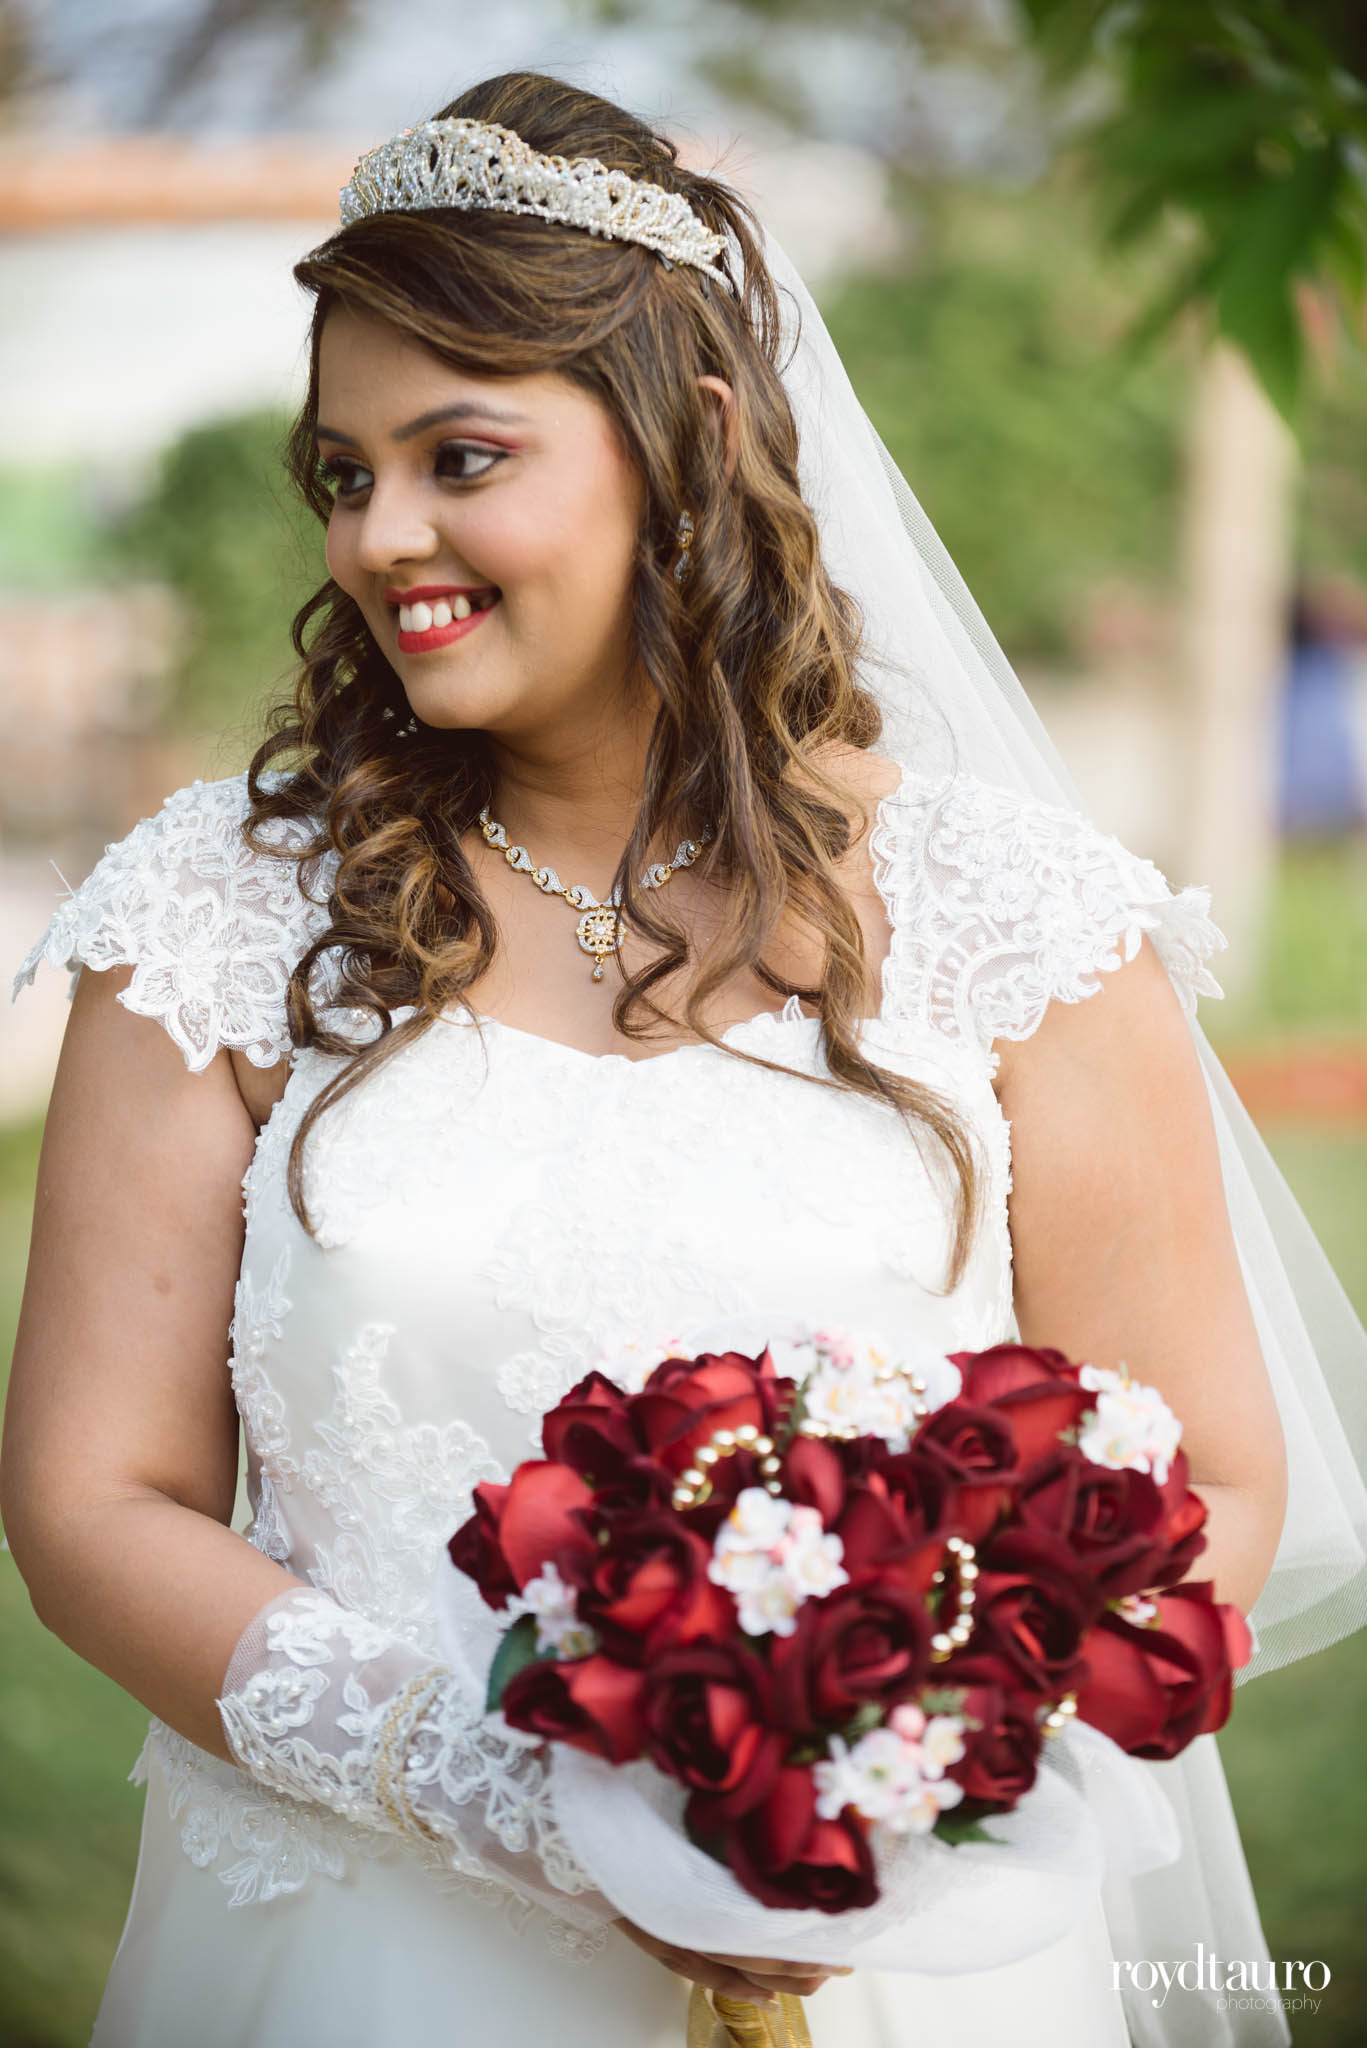 Harman-Glynnis-Post-Wedding-13.jpg